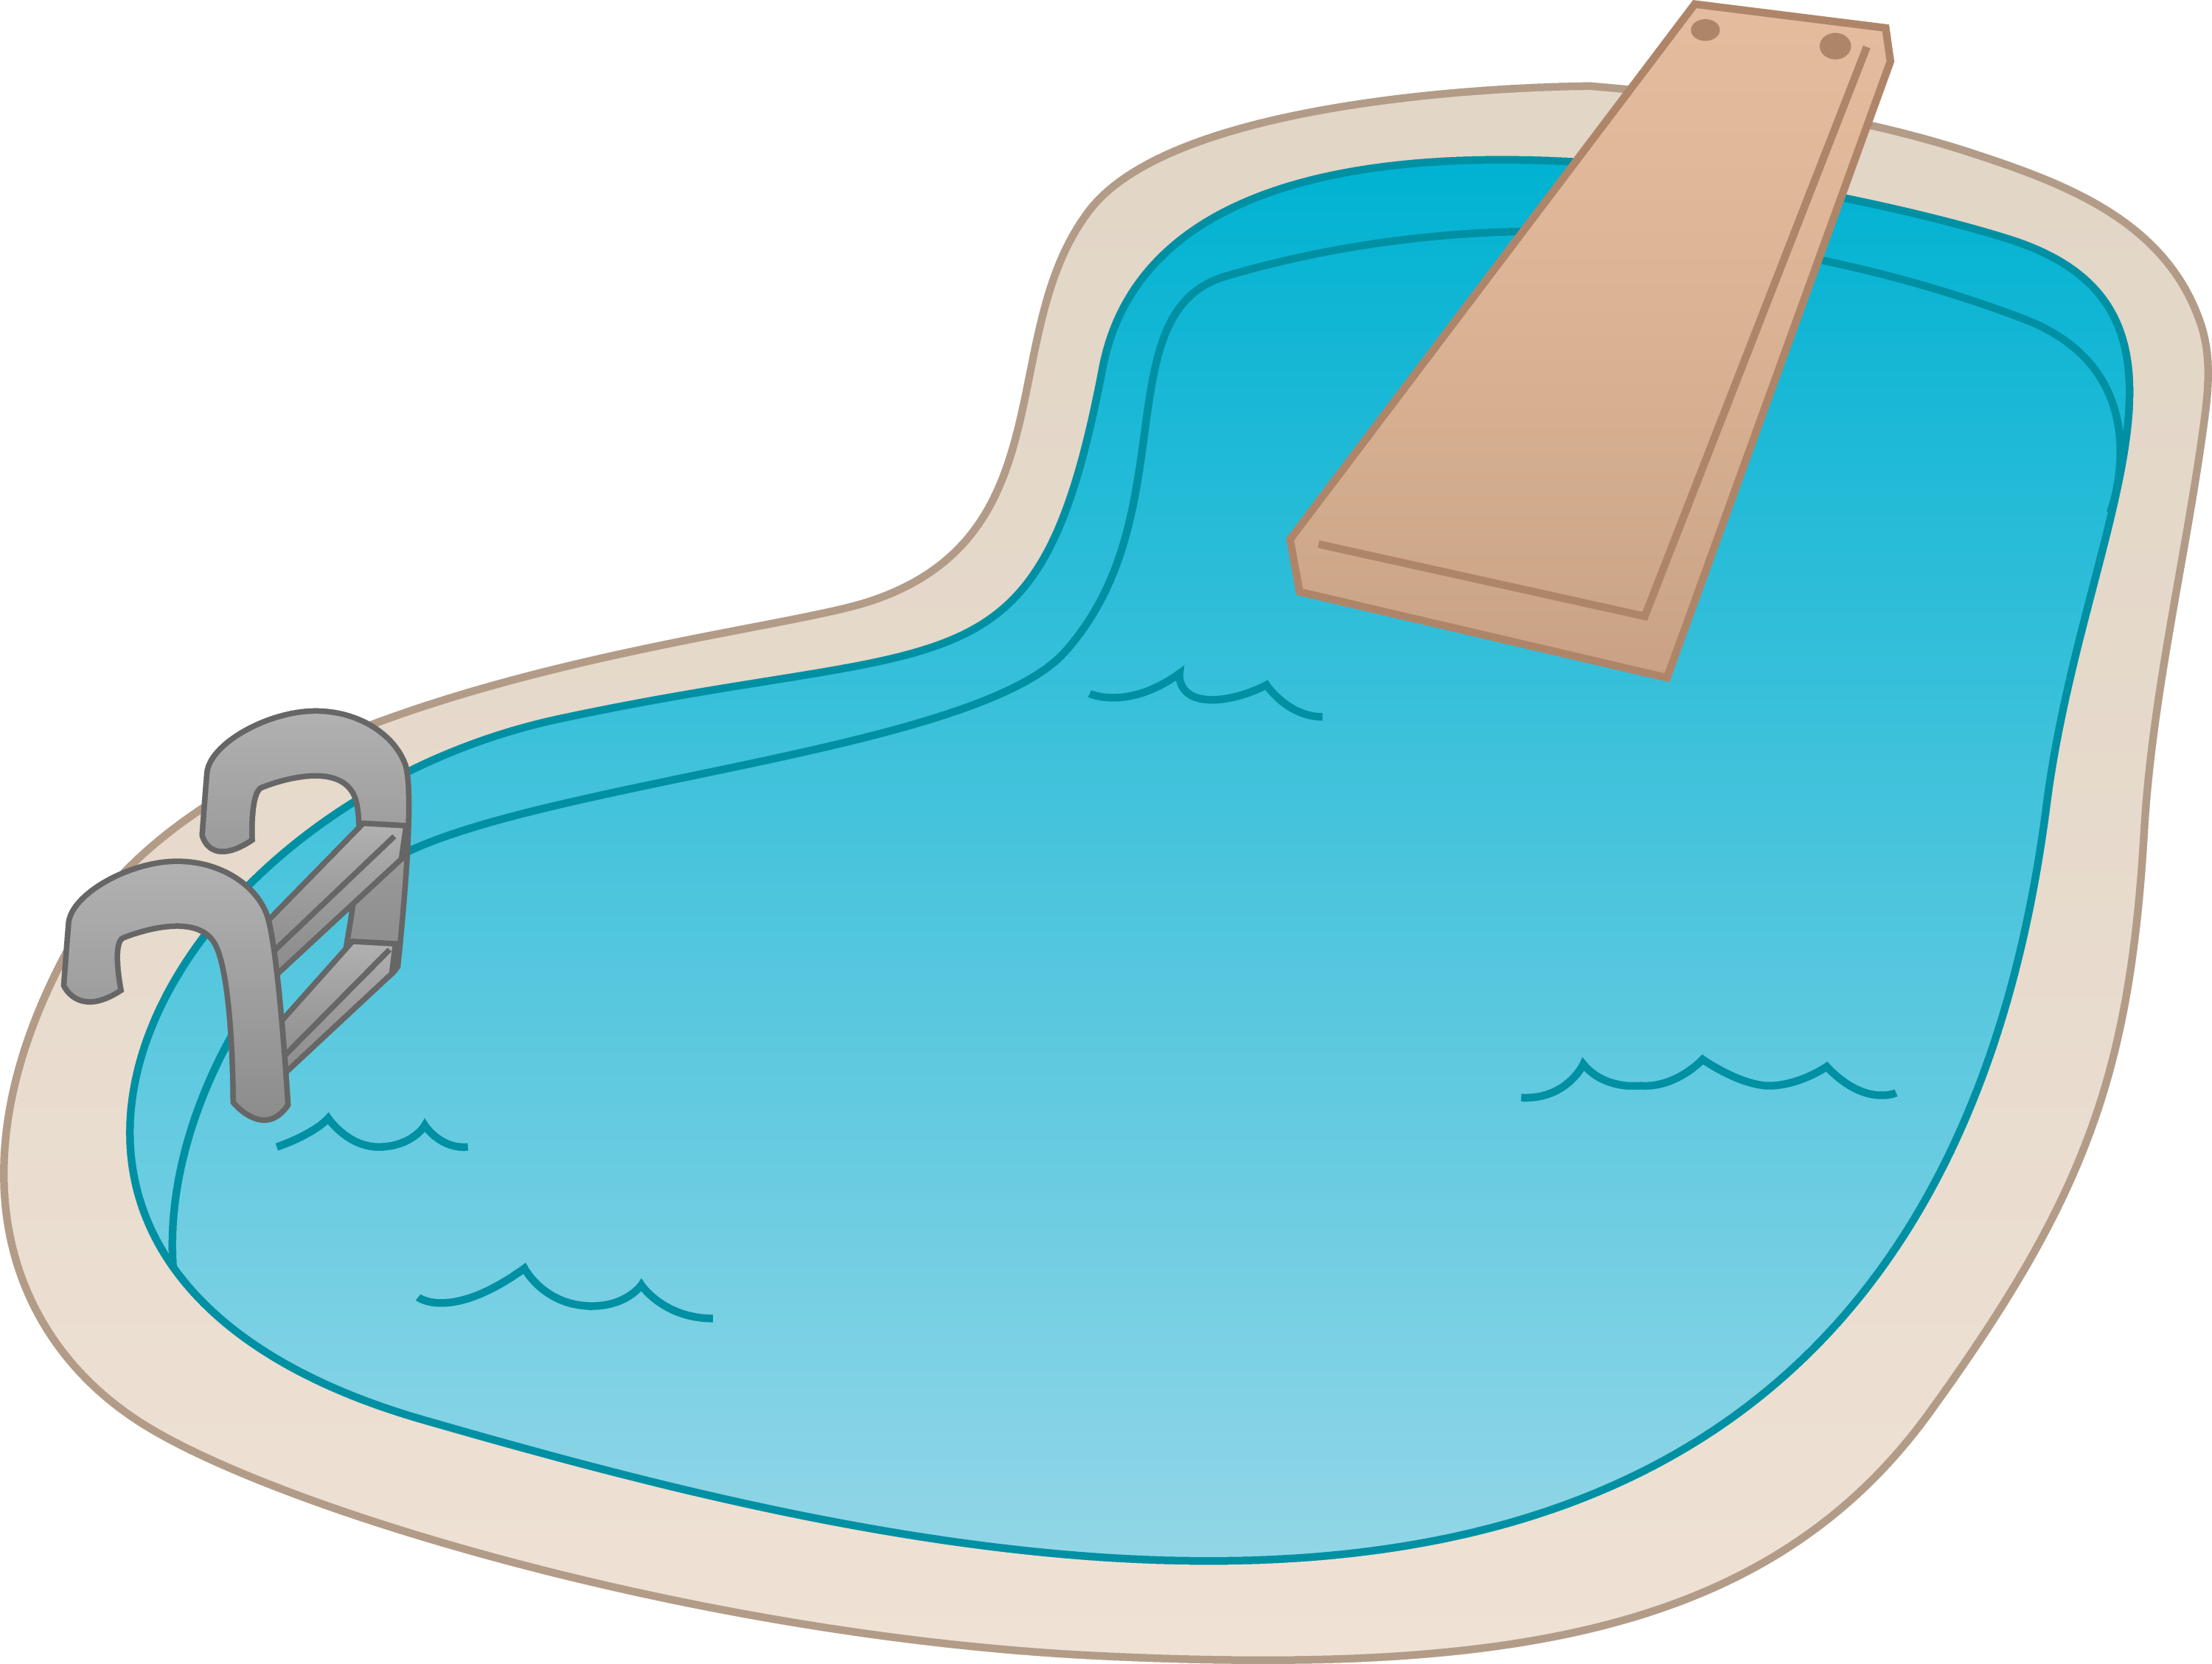 Swimming pool with diving board free clip art for Pool design graphic